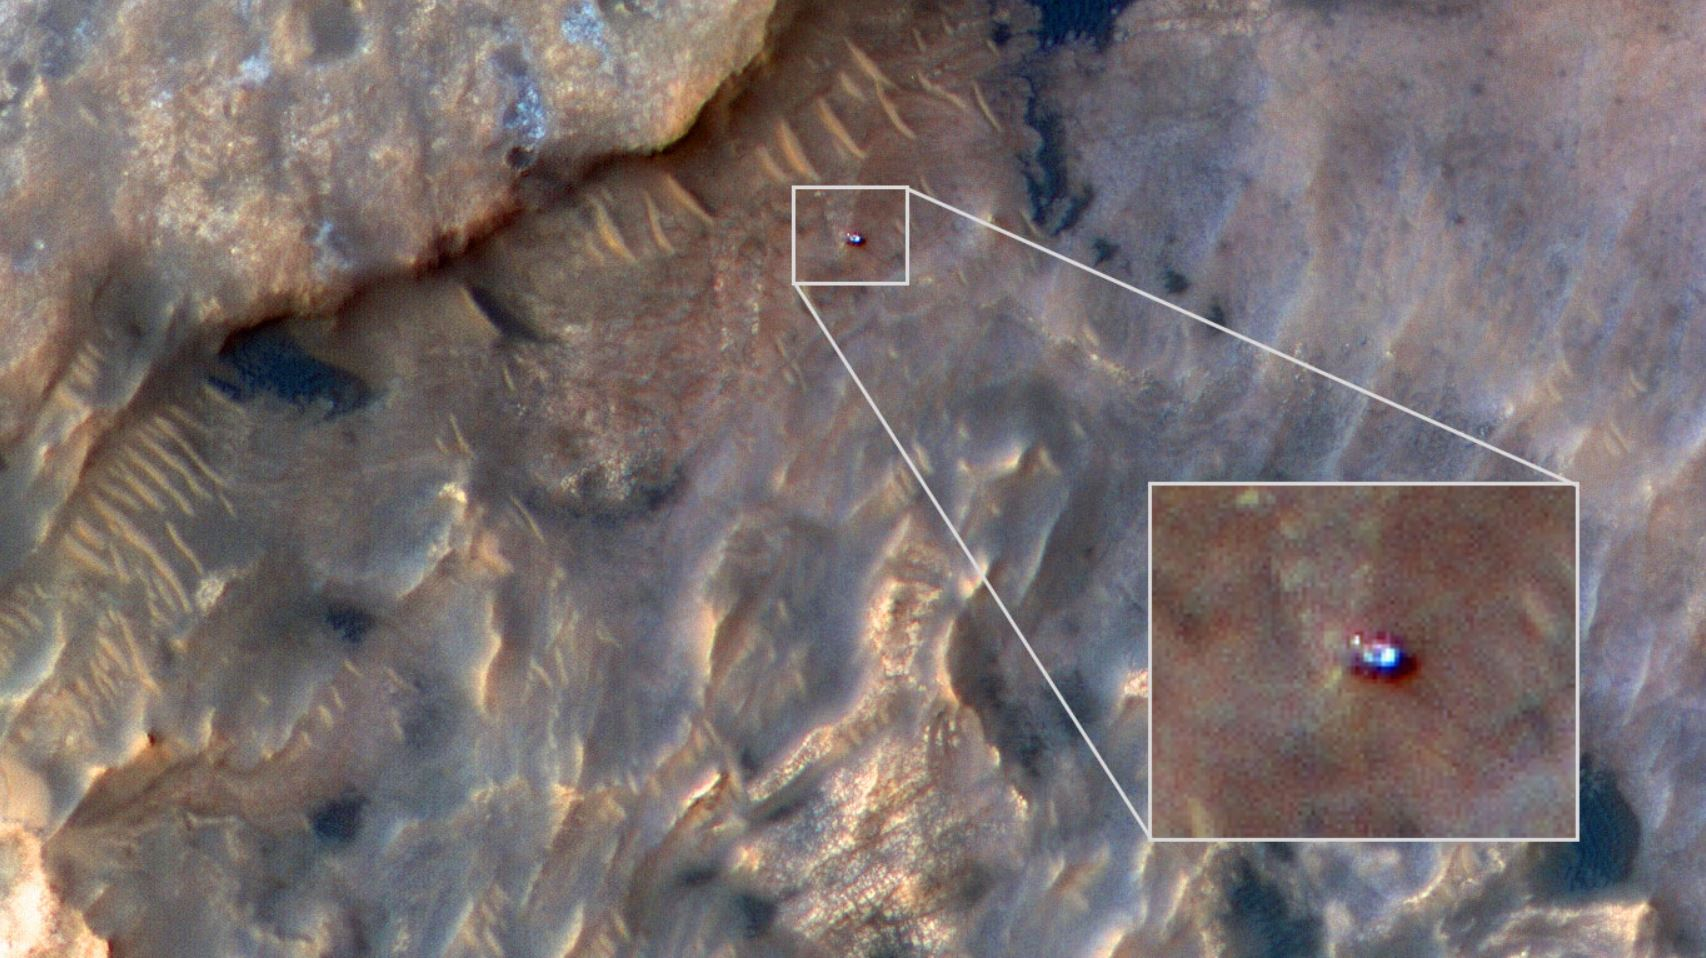 NASA's Curiosity Mars rover can be seen in this image taken from space on May 31, 2019, by the HiRISE camera aboard the Mars Reconnaissance Orbiter. In the image, Curiosity appears as a bluish speck. - Image Credits: NASA/JPL-Caltech